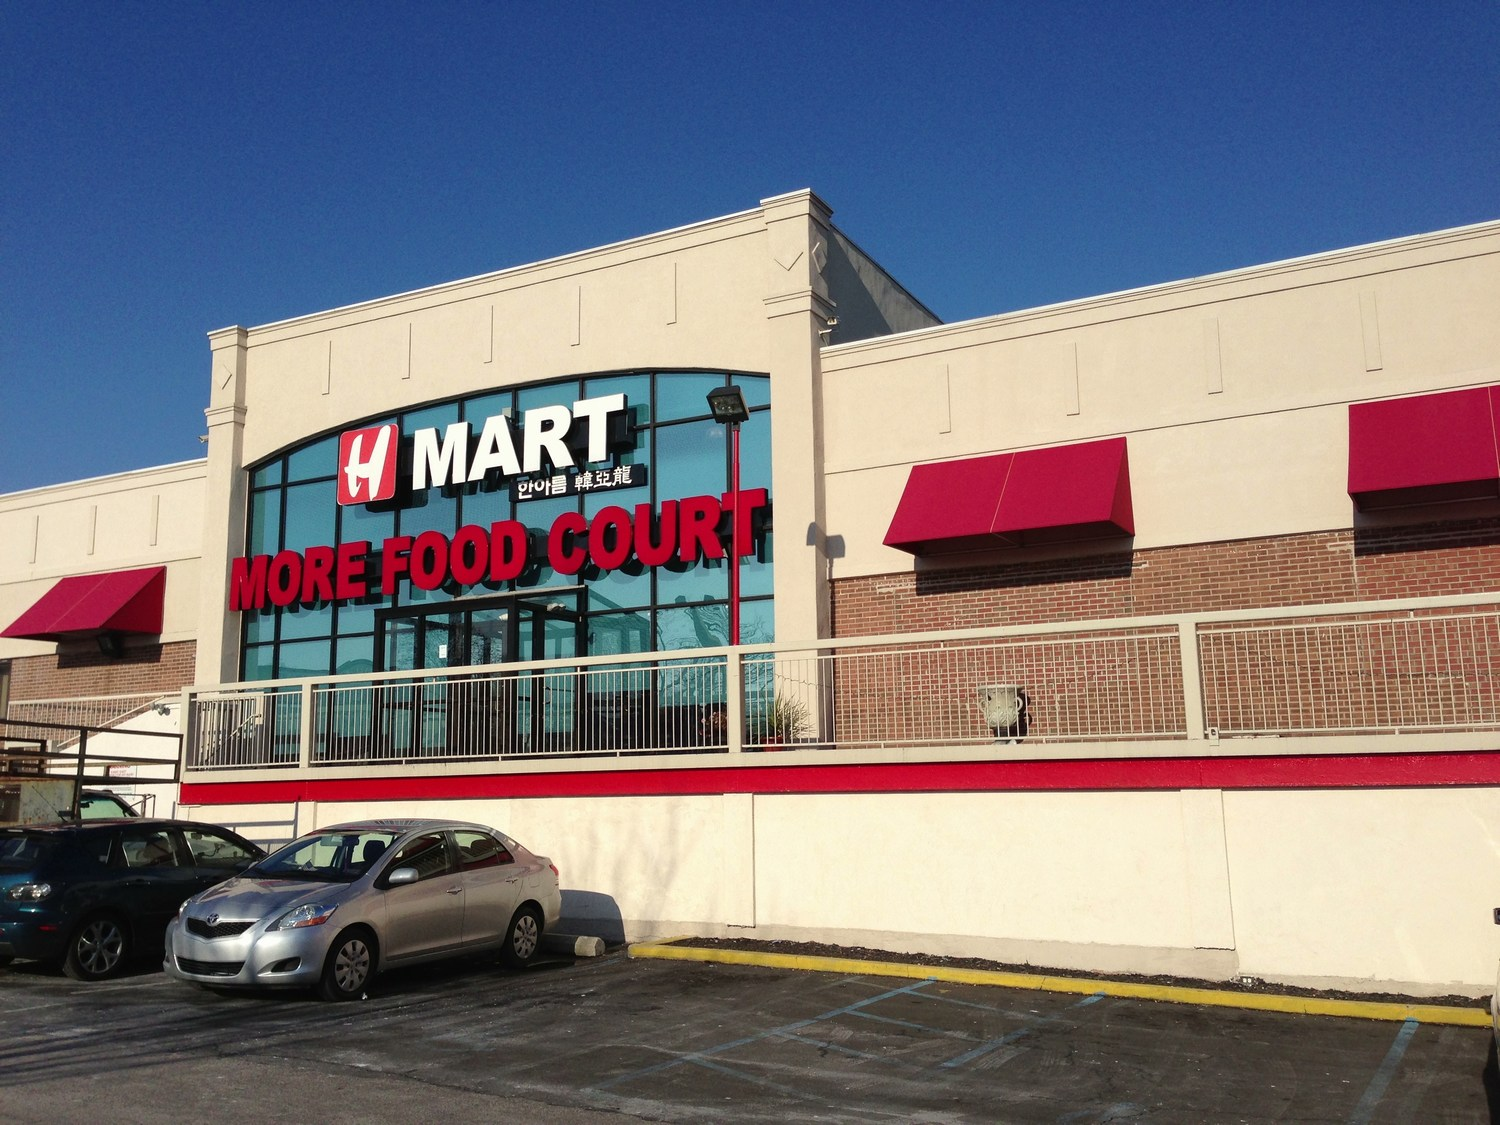 Hmart International Market and Shops